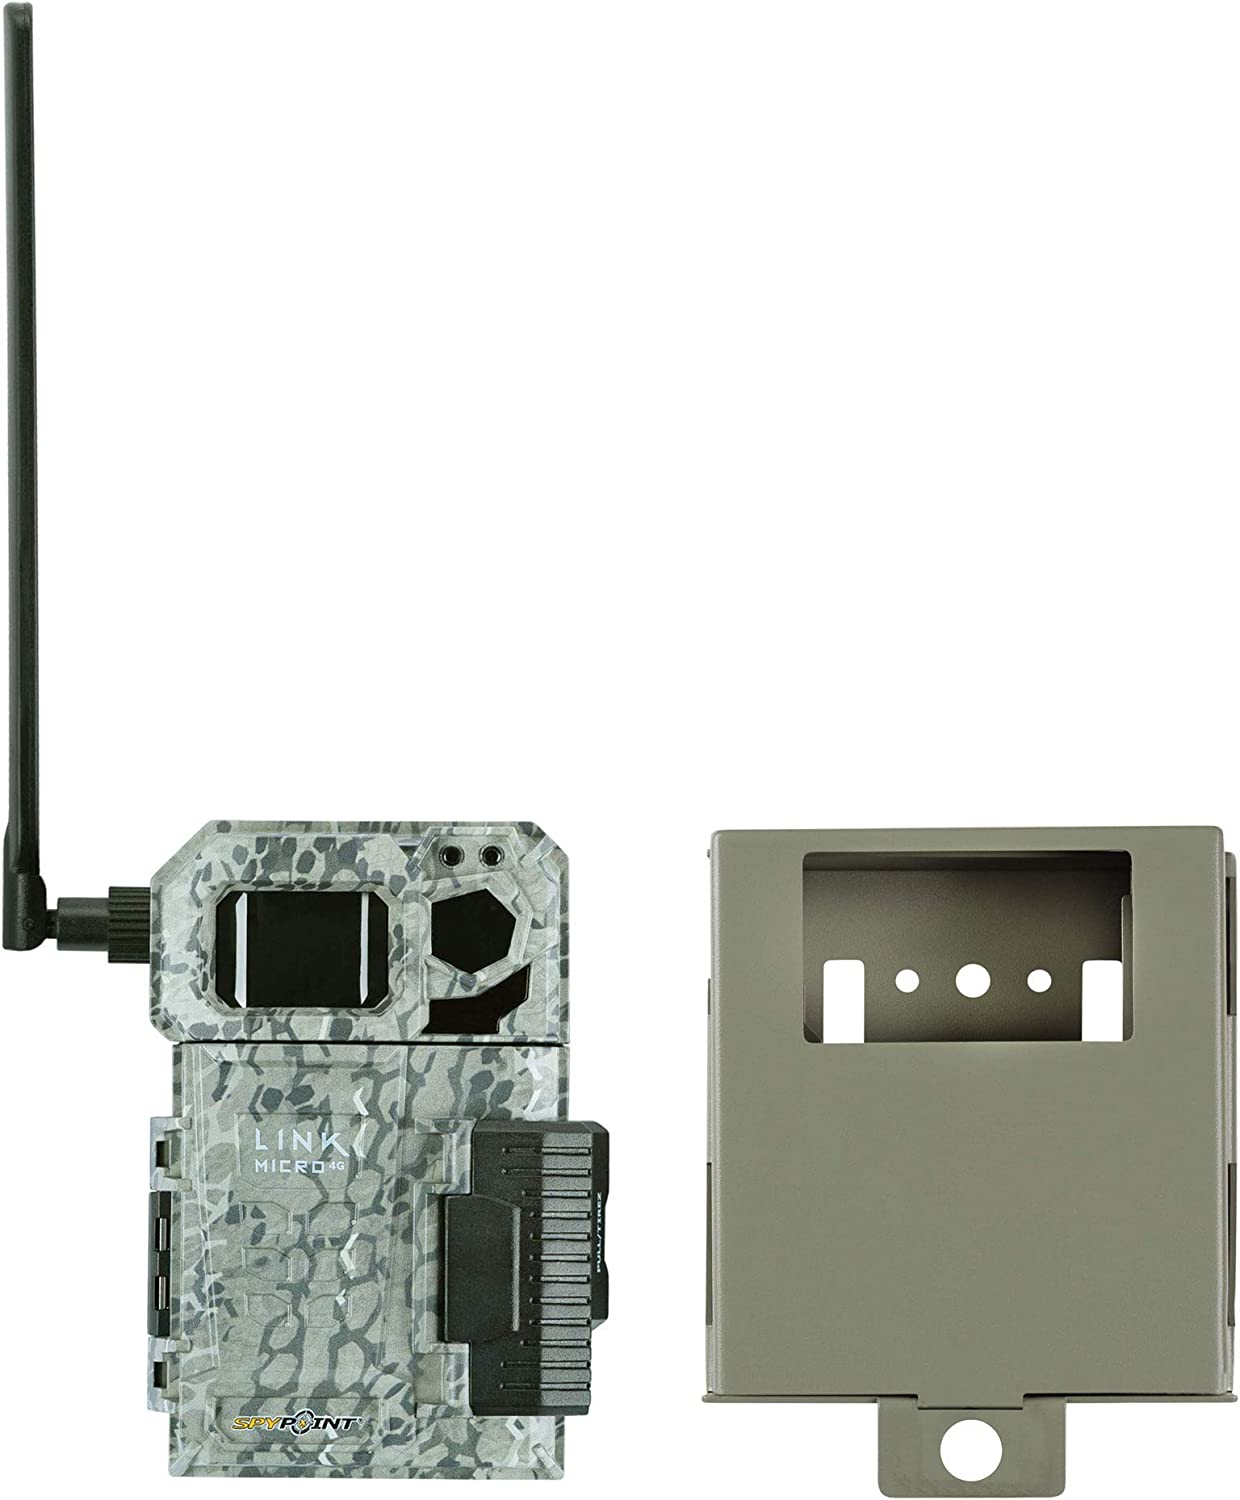 Spypoint Link Micro 4G Cellular Trail Camera with Steel Security Box (Link-Micro-V)